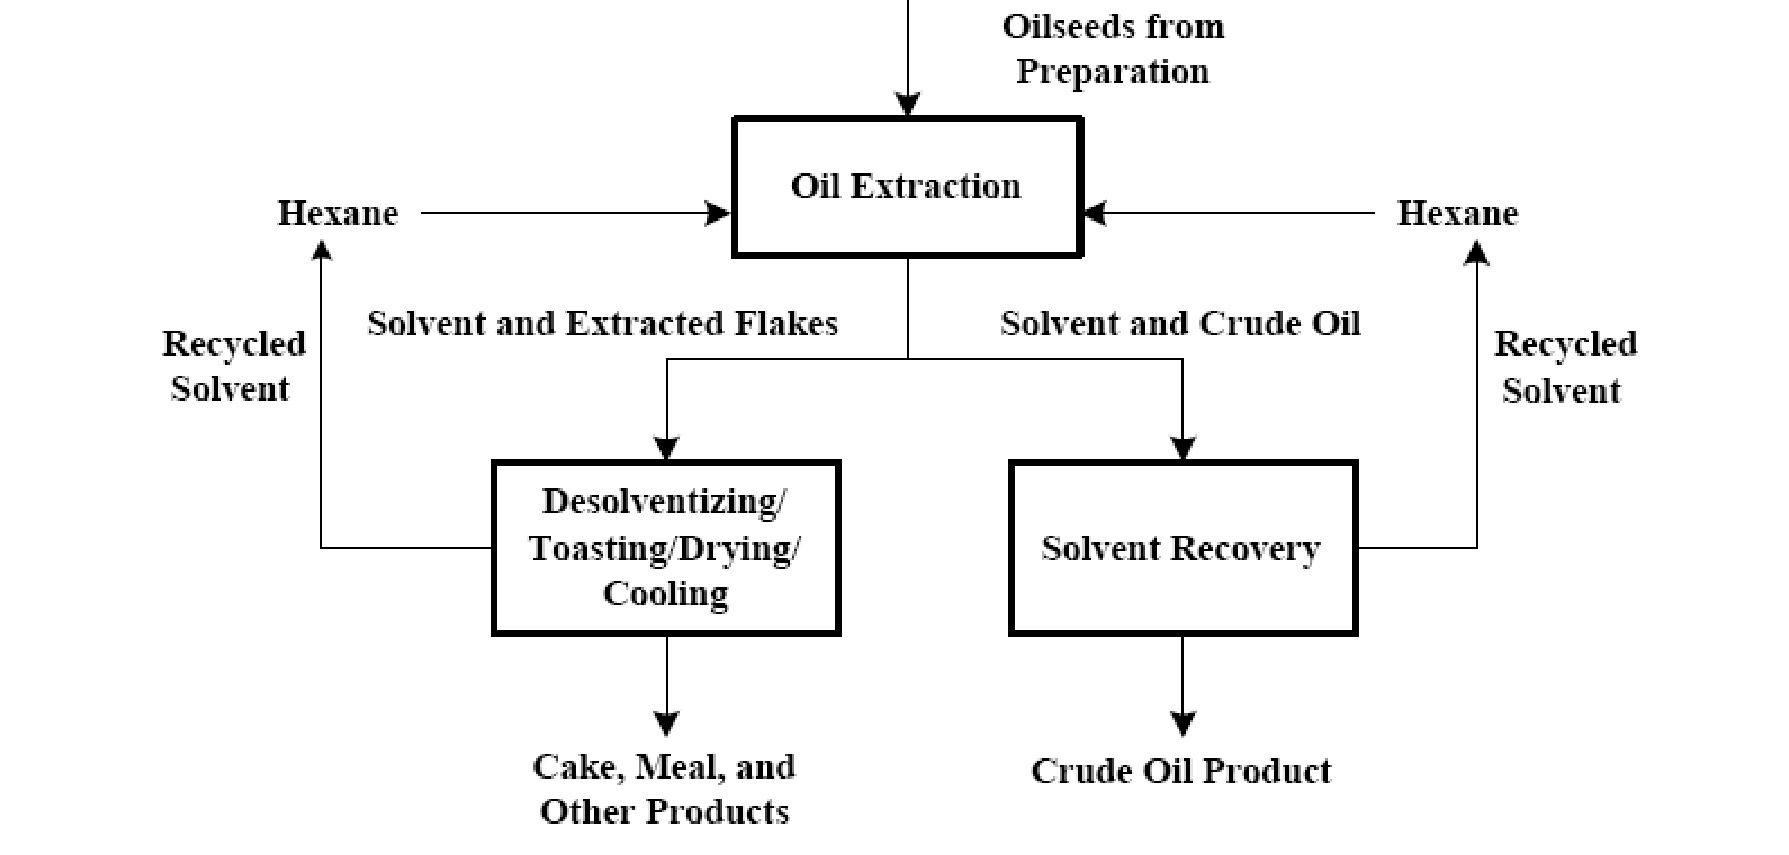 Fapc 159 Oil And Oilseed Processing Ii Osu Fact Sheets Process Flow Diagram For Purchase Department Figure 1 Simplified Of A Hexane Extraction